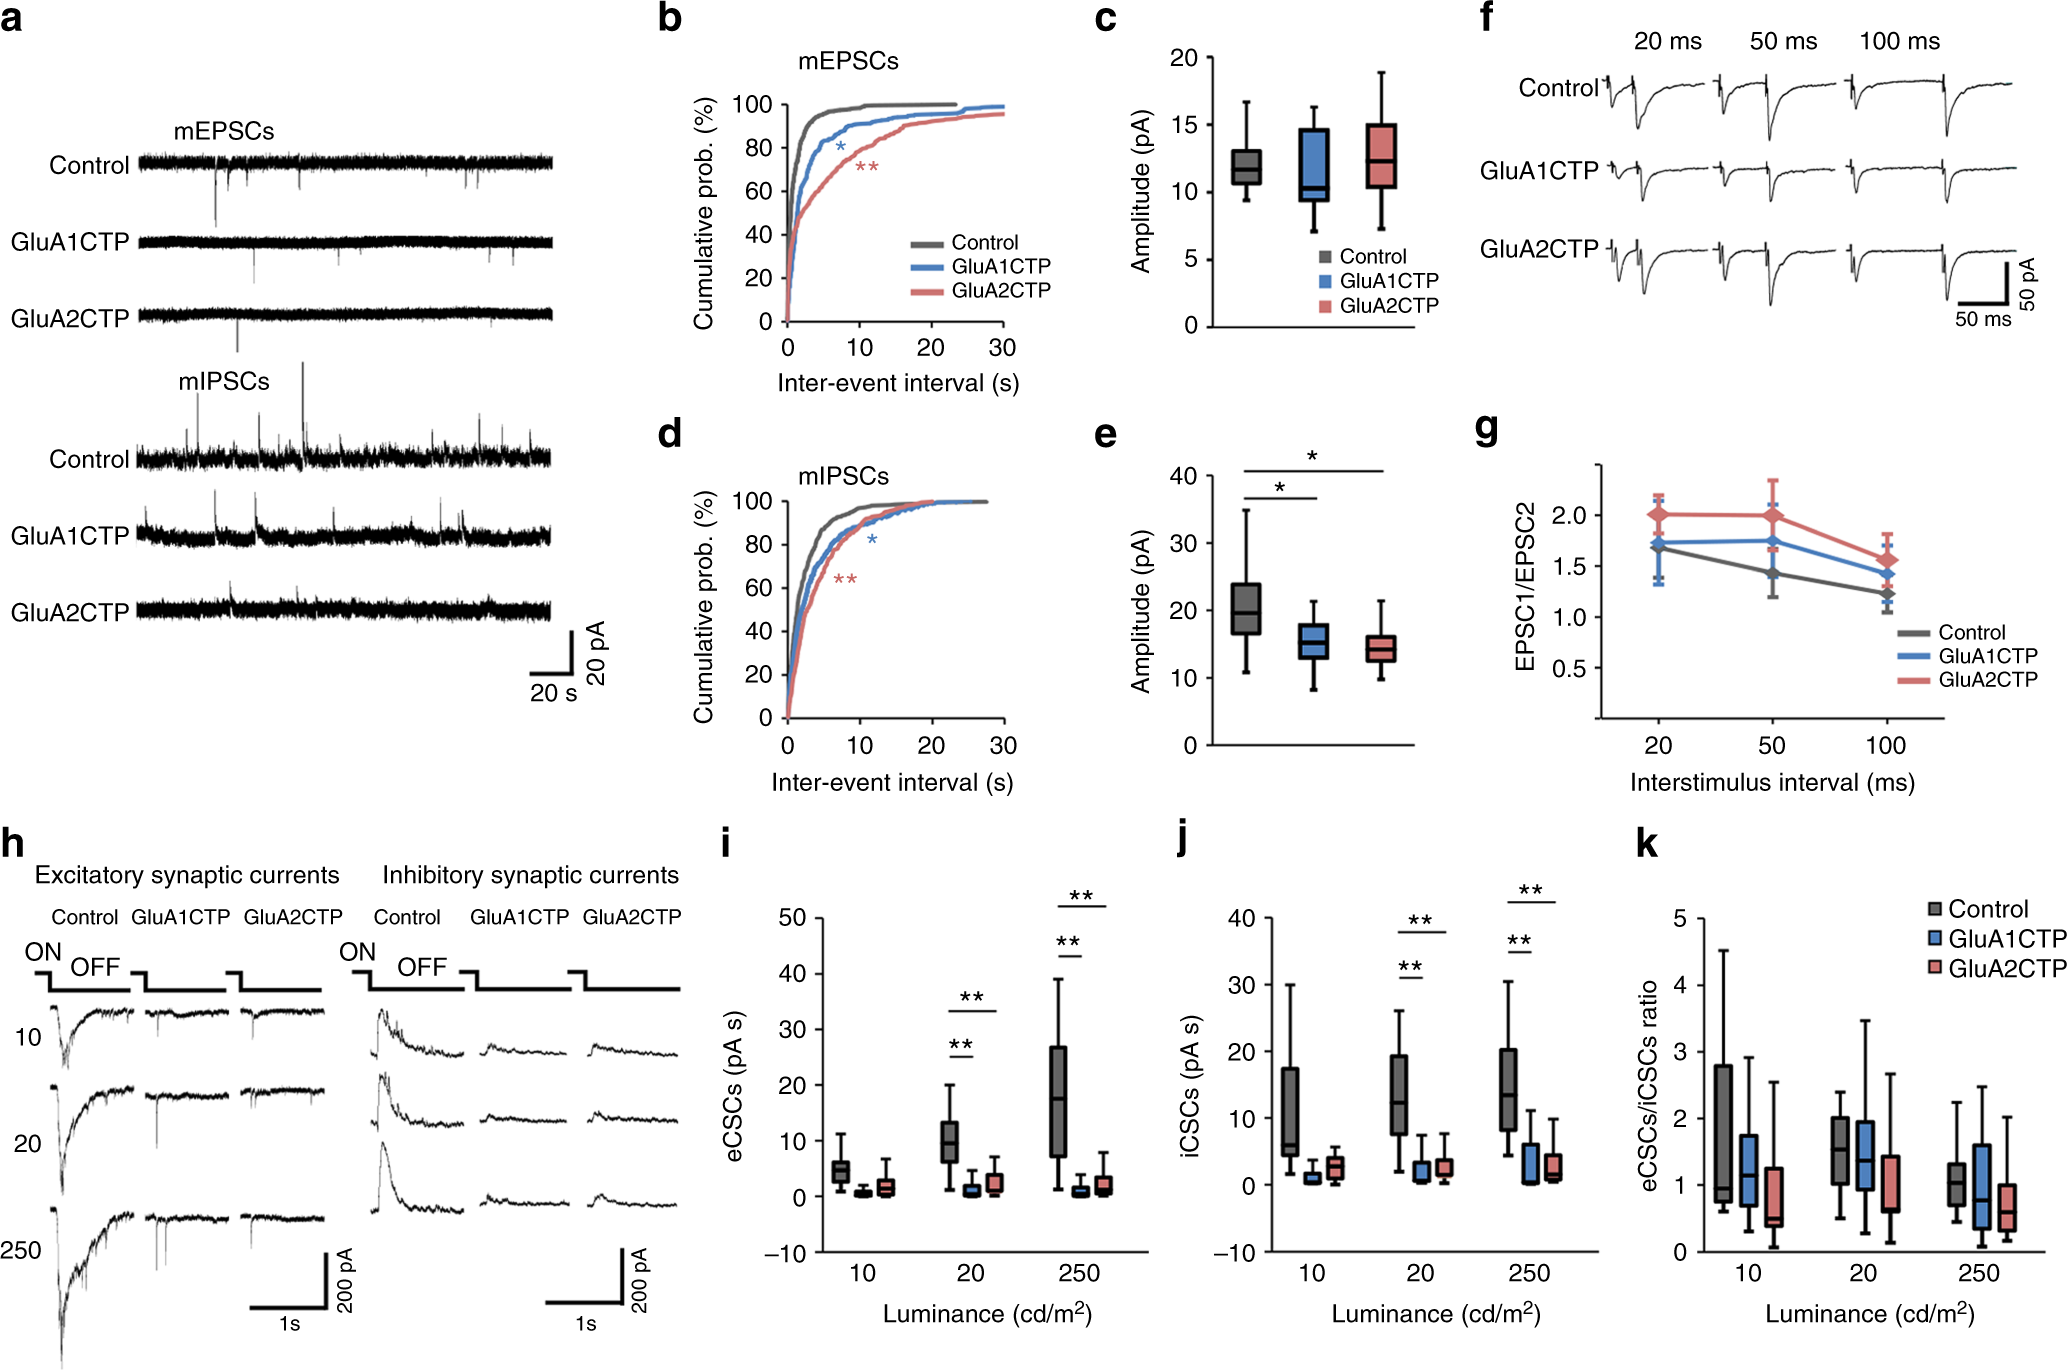 Excitatory synaptic dysfunction cell-autonomously decreases